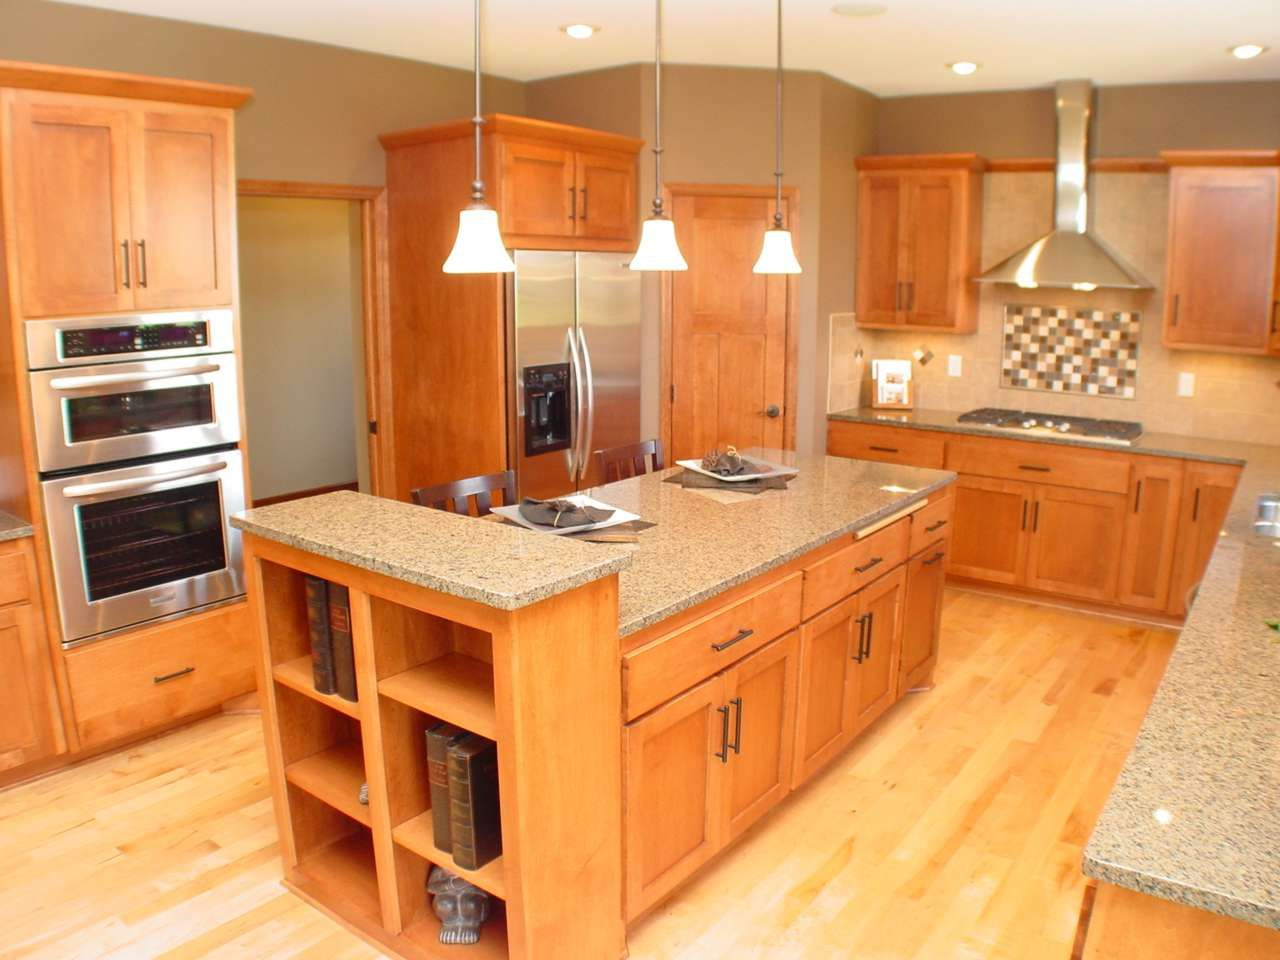 Kitchen Remodeling By J Thompson And Associates Hastings St - Kitchen remodeling st paul mn